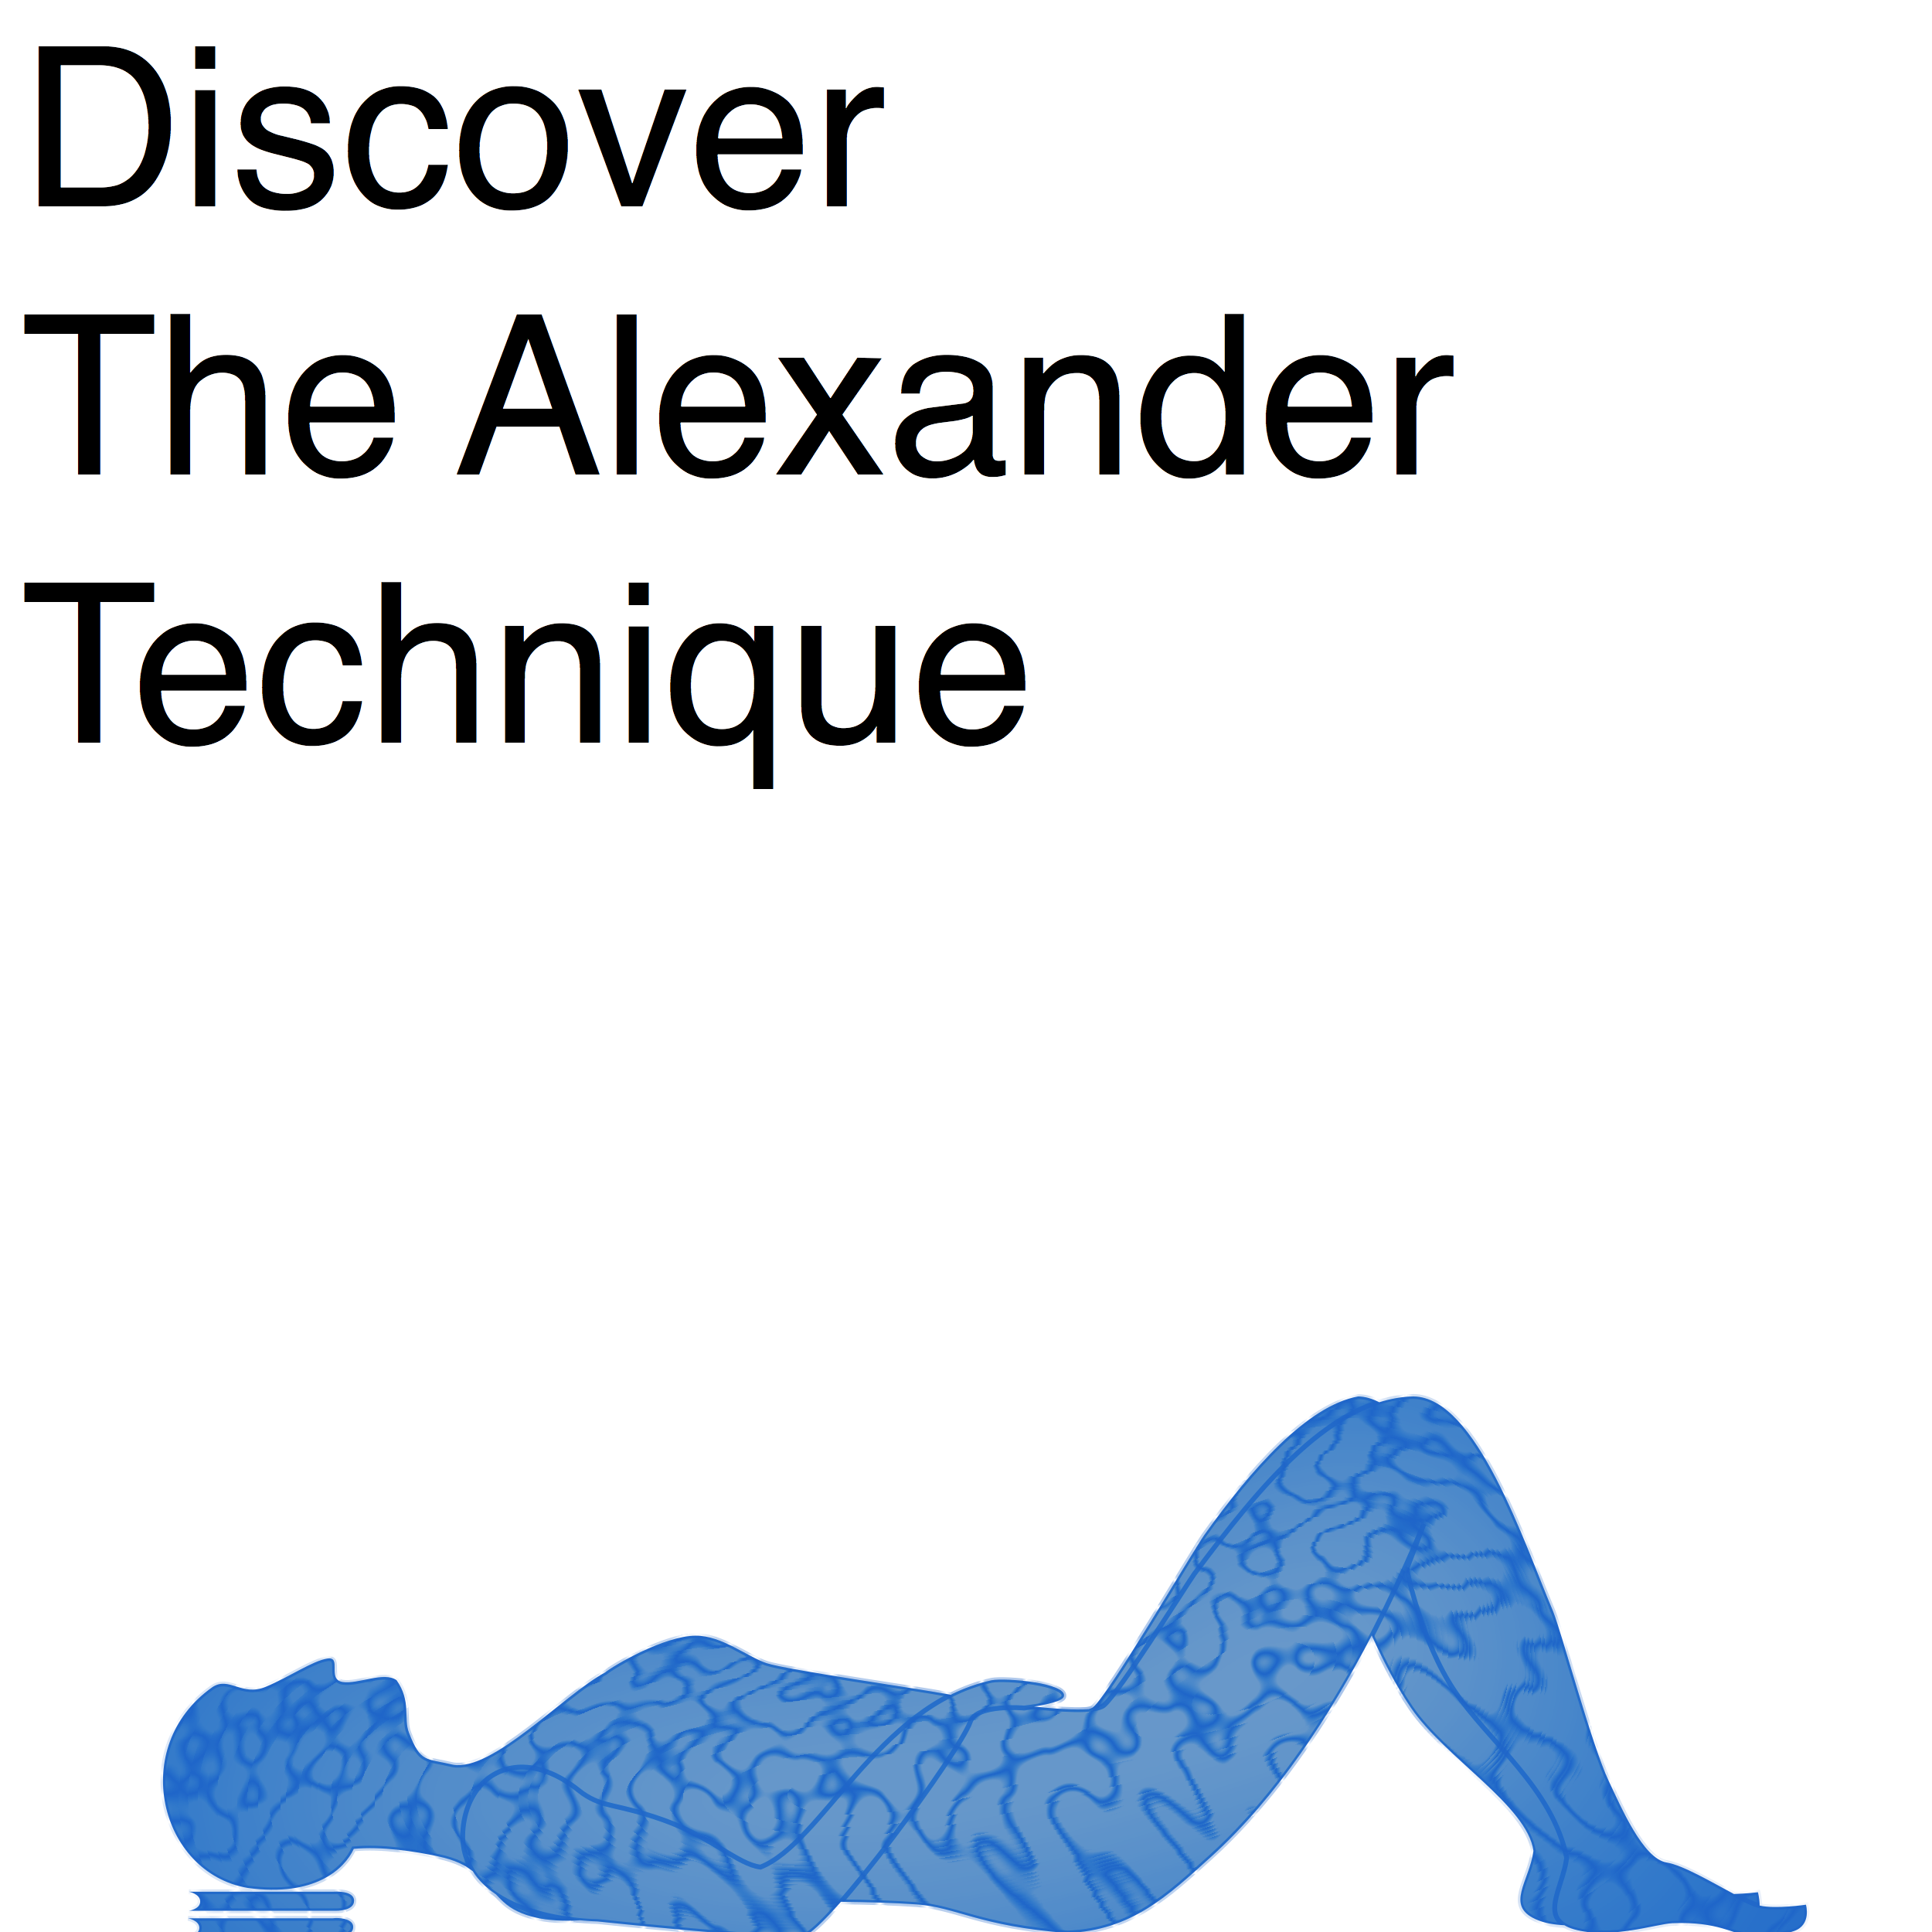 Lesley Edwards Discover the Alexander Technique